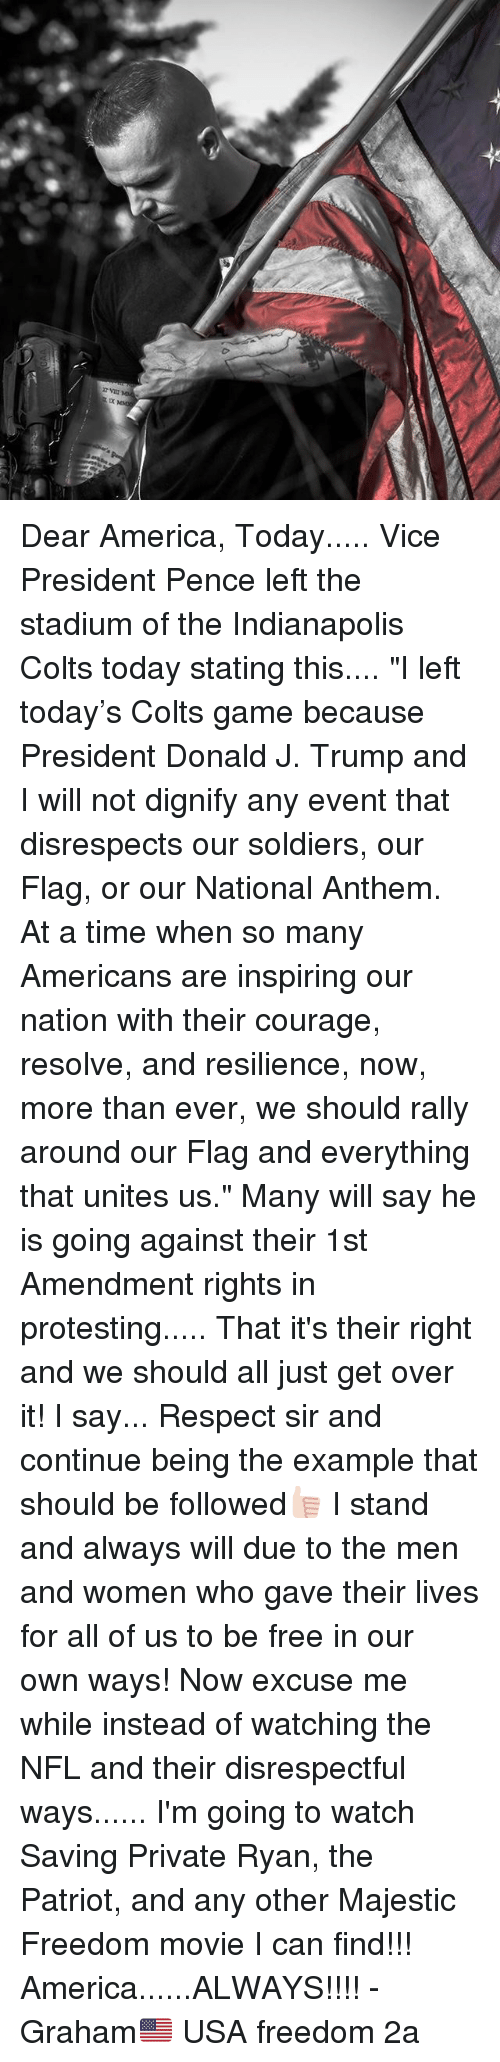 """the patriot: Dear America, Today..... Vice President Pence left the stadium of the Indianapolis Colts today stating this.... """"I left today's Colts game because President Donald J. Trump and I will not dignify any event that disrespects our soldiers, our Flag, or our National Anthem. At a time when so many Americans are inspiring our nation with their courage, resolve, and resilience, now, more than ever, we should rally around our Flag and everything that unites us."""" Many will say he is going against their 1st Amendment rights in protesting..... That it's their right and we should all just get over it! I say... Respect sir and continue being the example that should be followed👍🏻 I stand and always will due to the men and women who gave their lives for all of us to be free in our own ways! Now excuse me while instead of watching the NFL and their disrespectful ways...... I'm going to watch Saving Private Ryan, the Patriot, and any other Majestic Freedom movie I can find!!! America......ALWAYS!!!! -Graham🇺🇸 USA freedom 2a"""